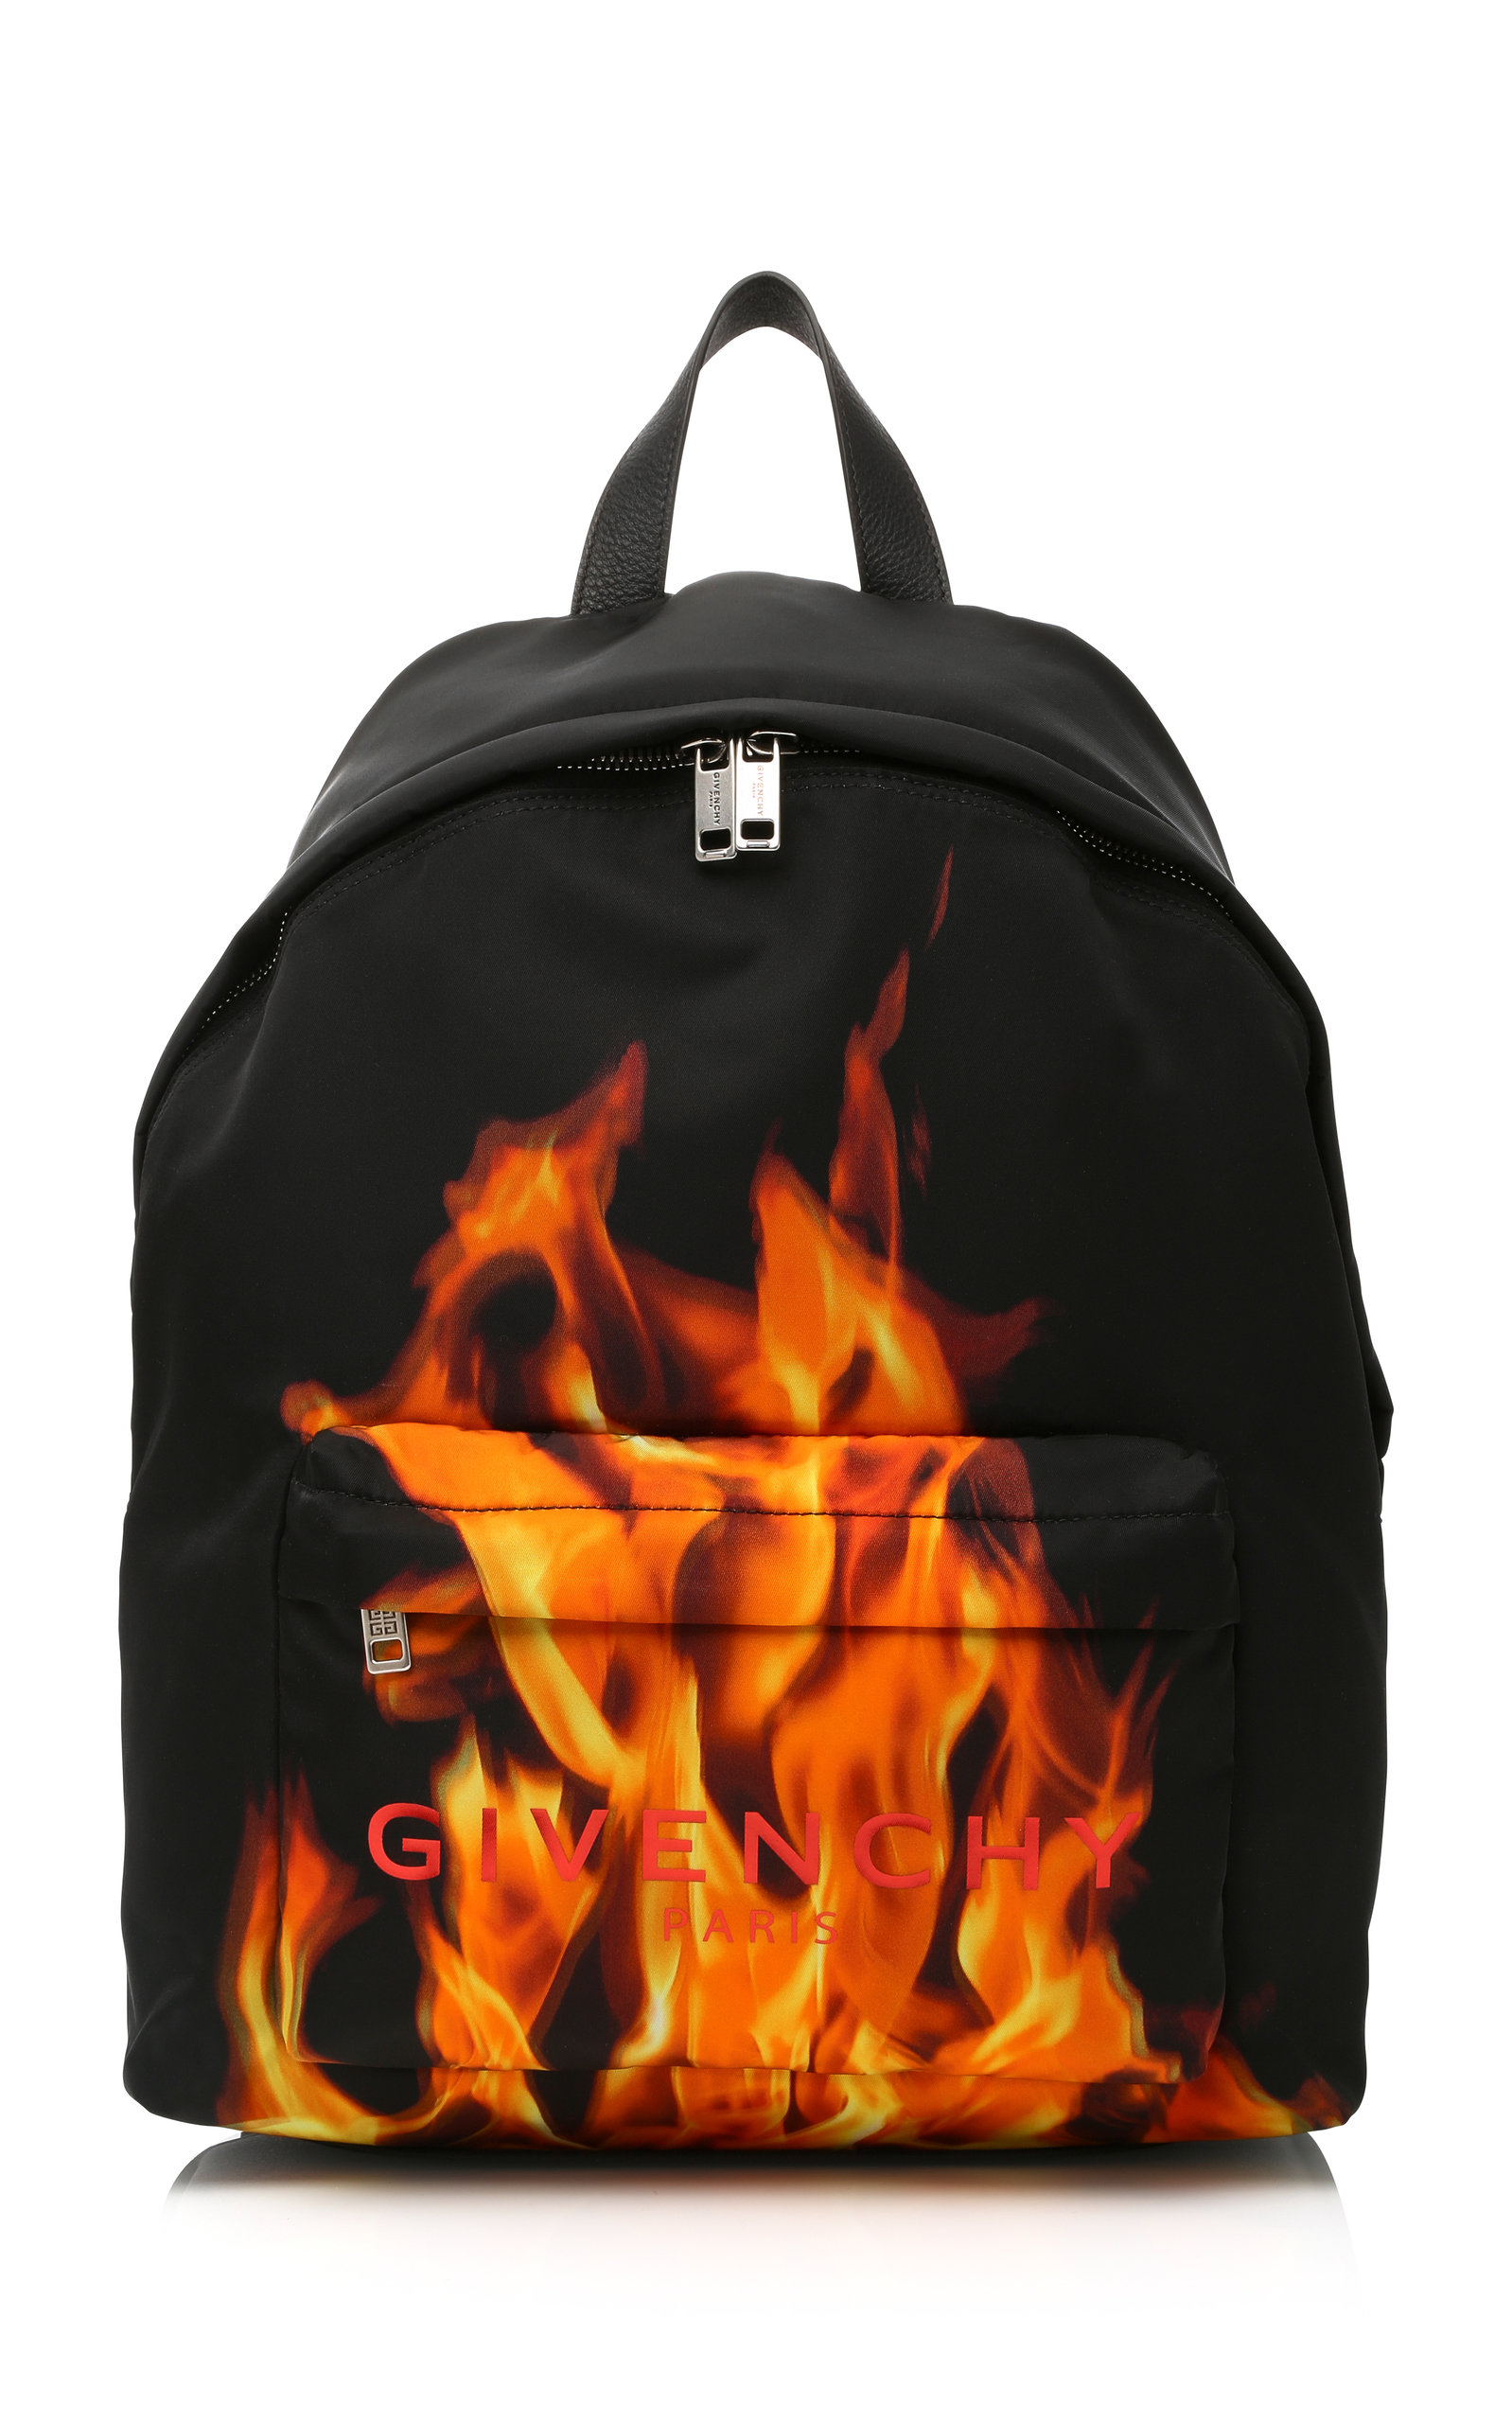 GIVENCHY FLAME LOGO BACKPACK